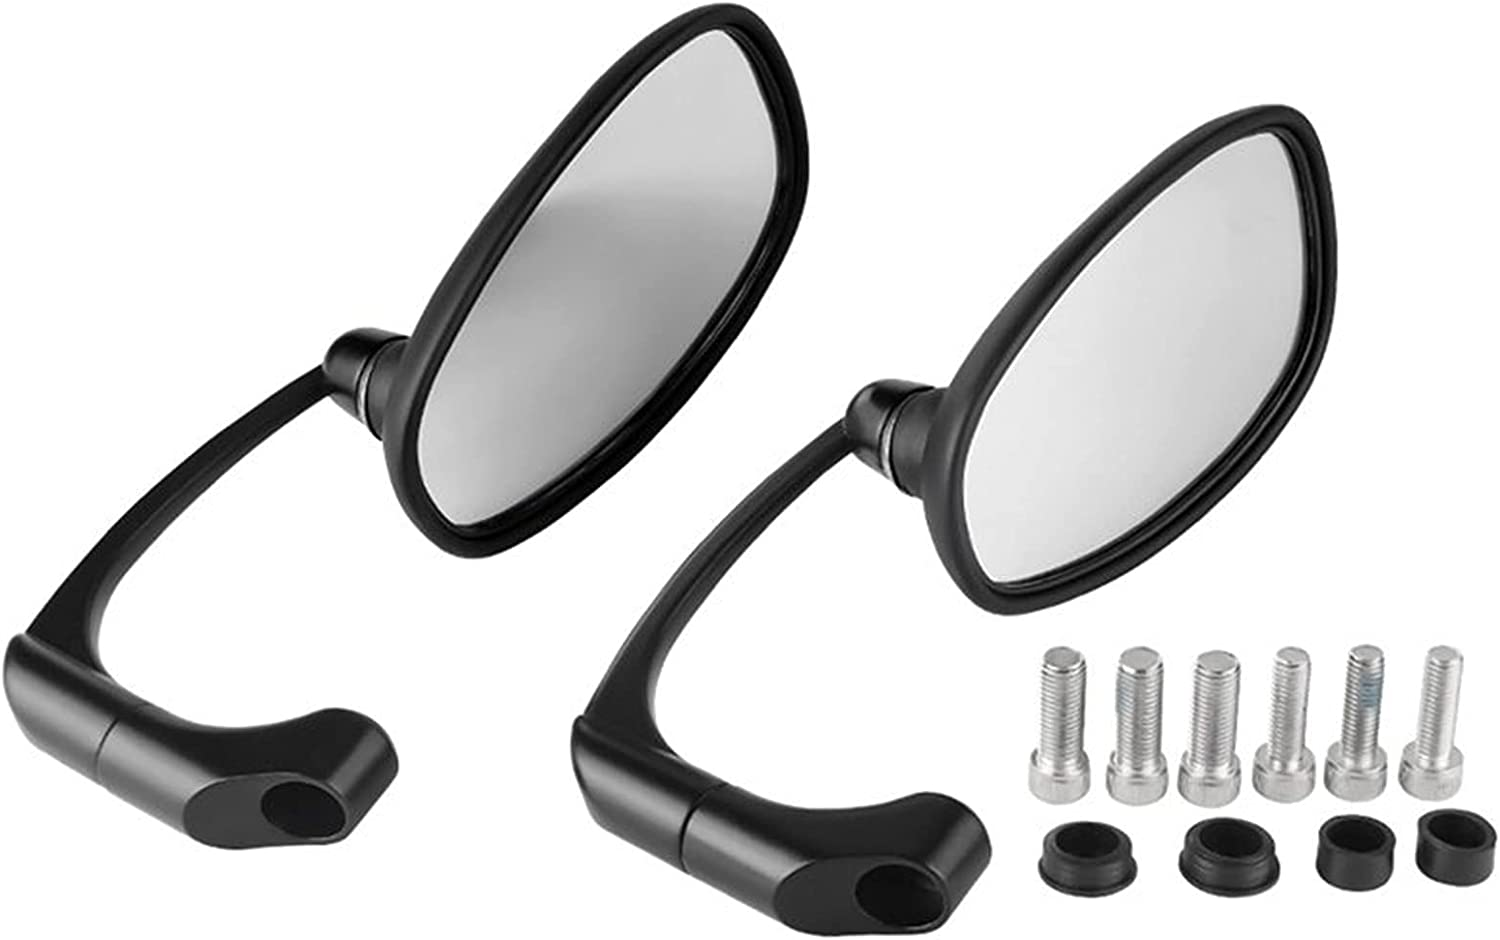 Jacksonville Mall New products, world's highest quality popular! CSZBH Motorbike View Mirror Motorcycle Rear Black M Retro